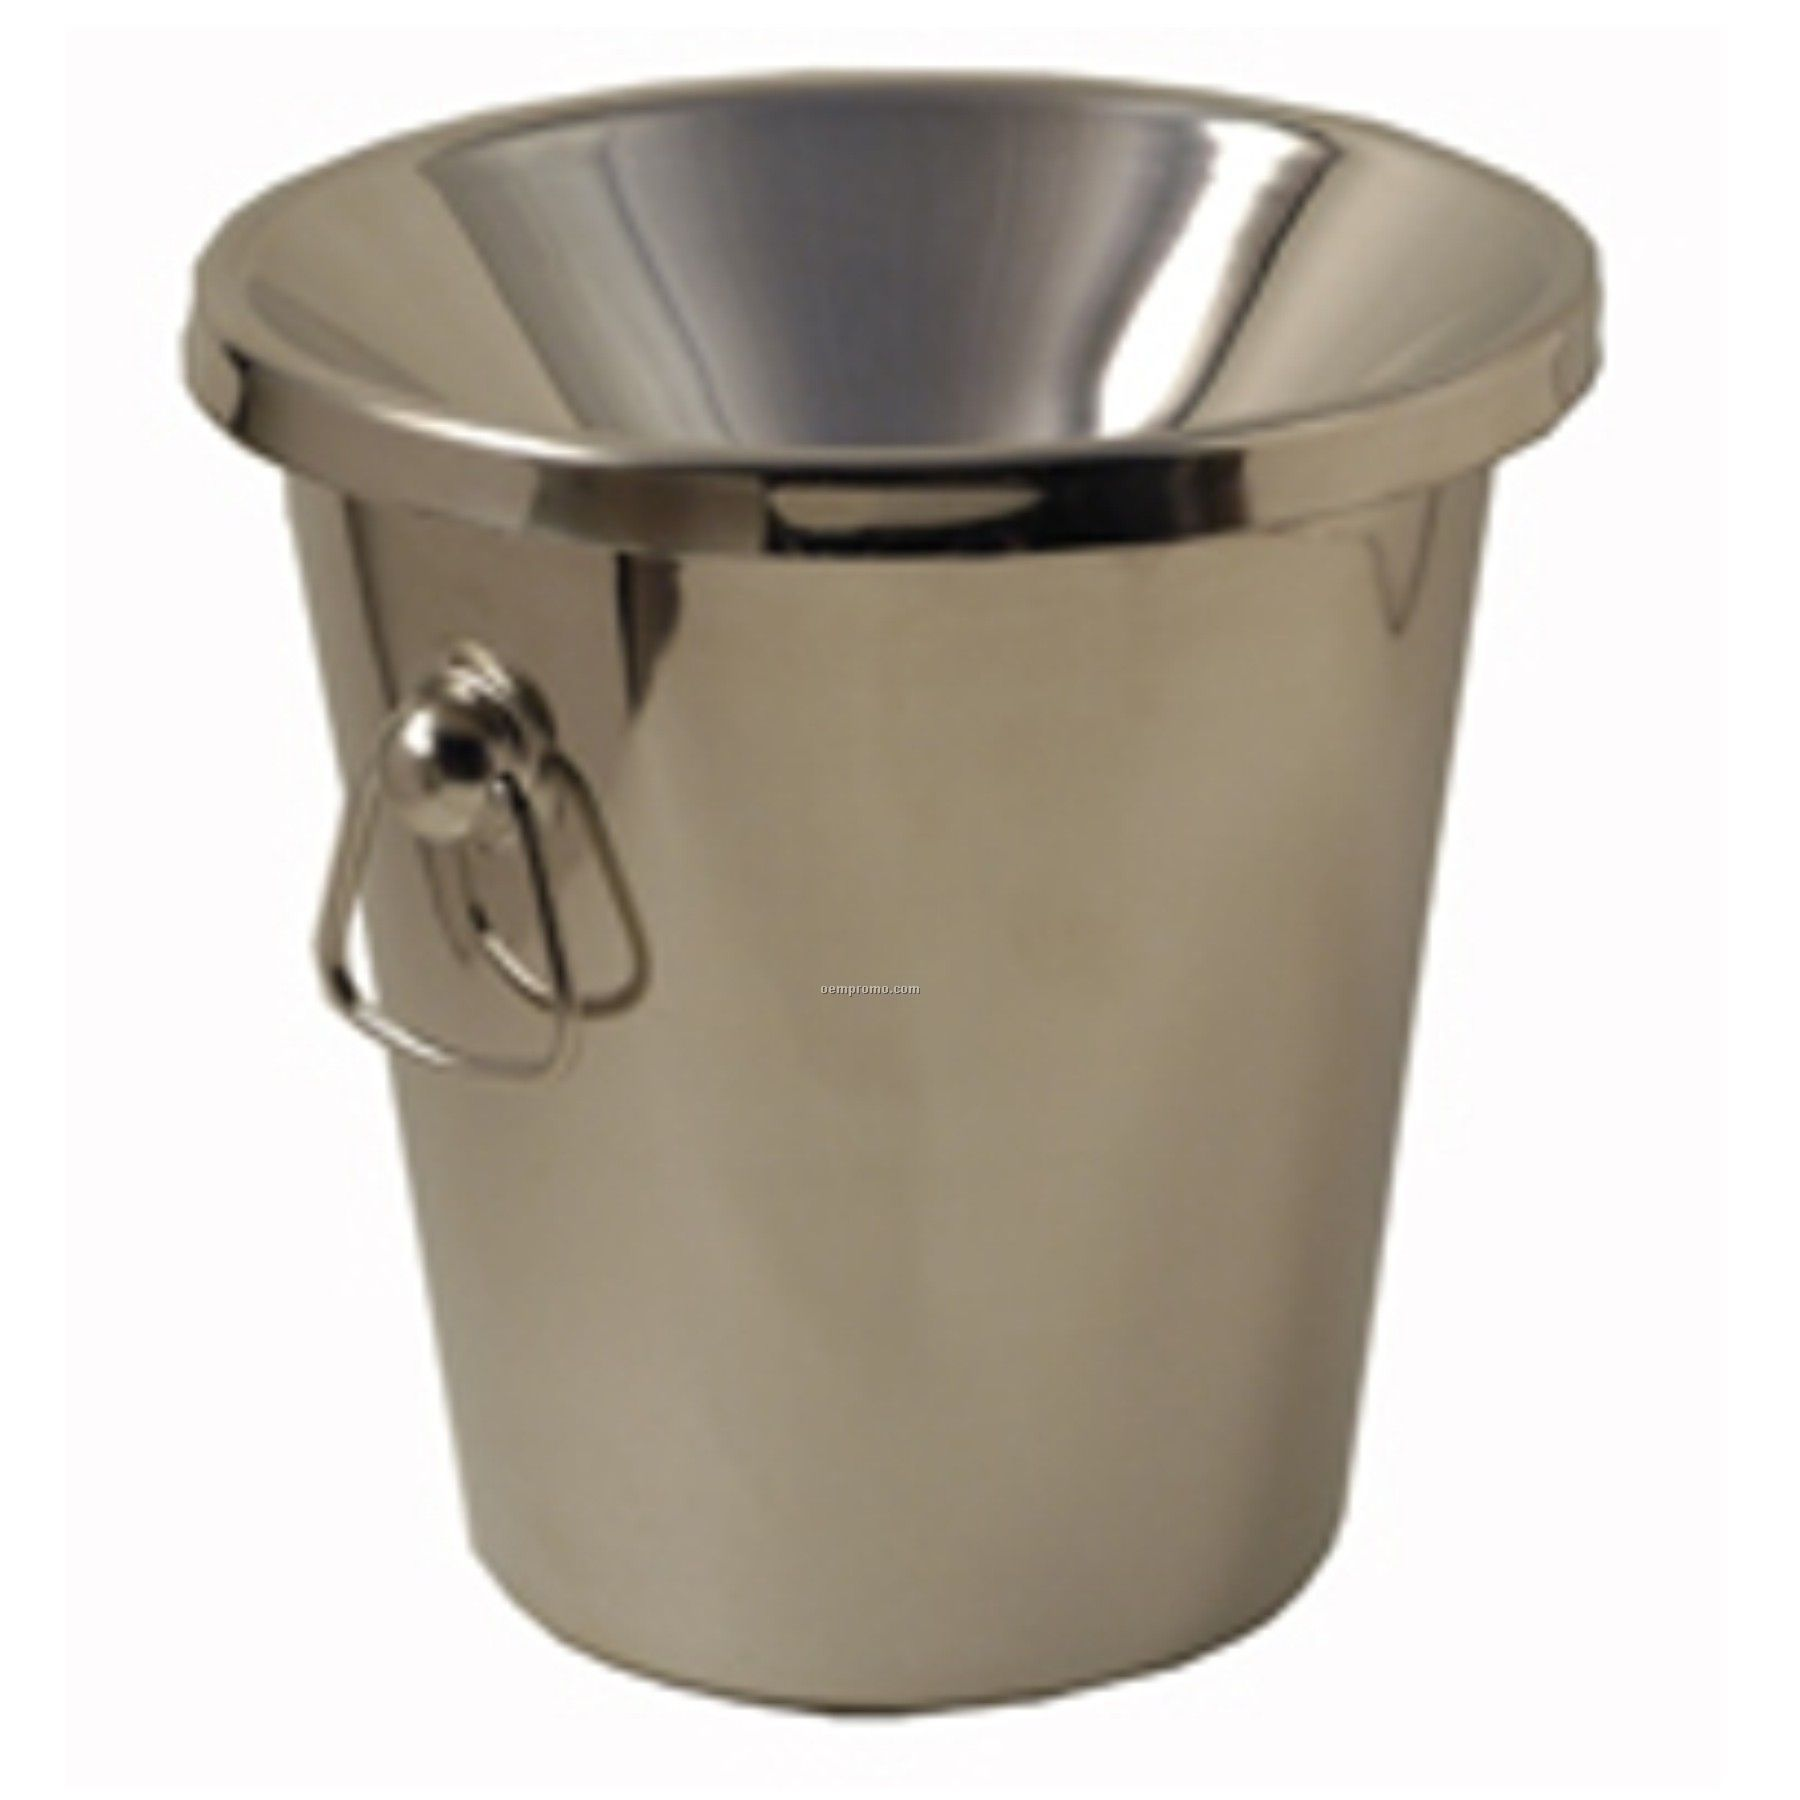 Stainless Steel Wine Tasting Receptacle/Spittoon With Lid- Laser Engraved